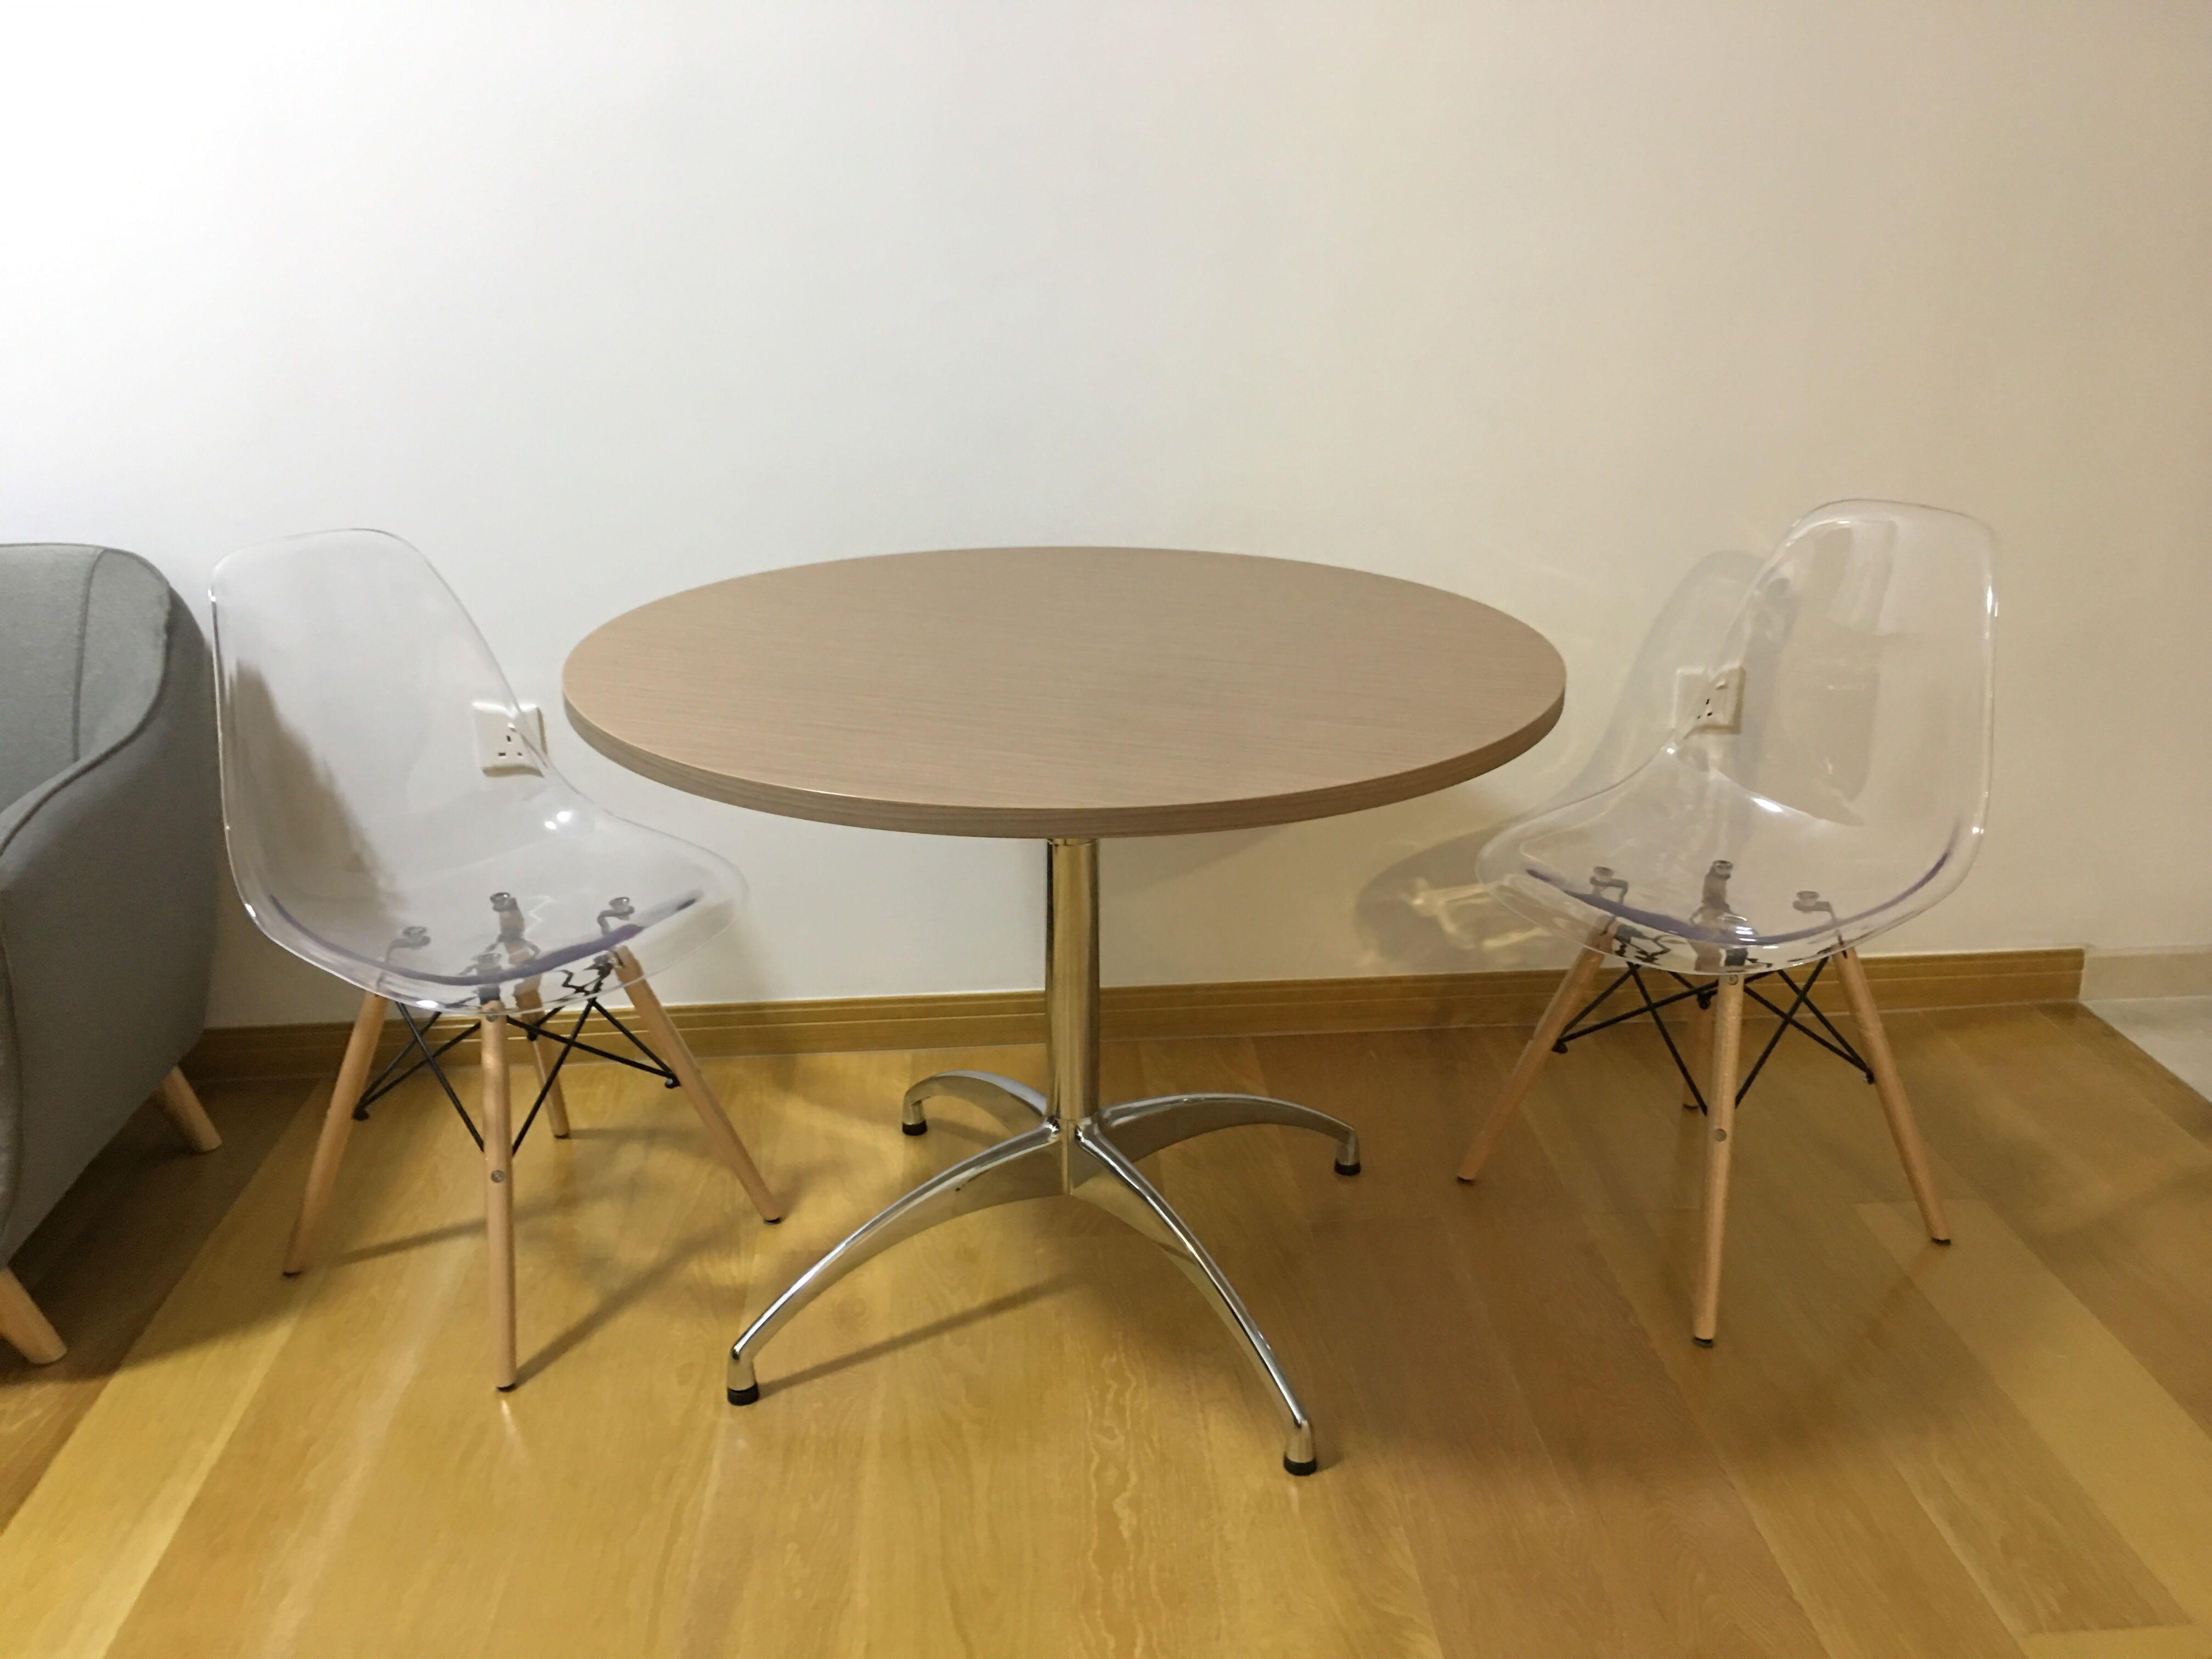 Round Dining Table With Chrome Legs Eames Replica Chair Clear Furniture Tables Chairs On Carousell